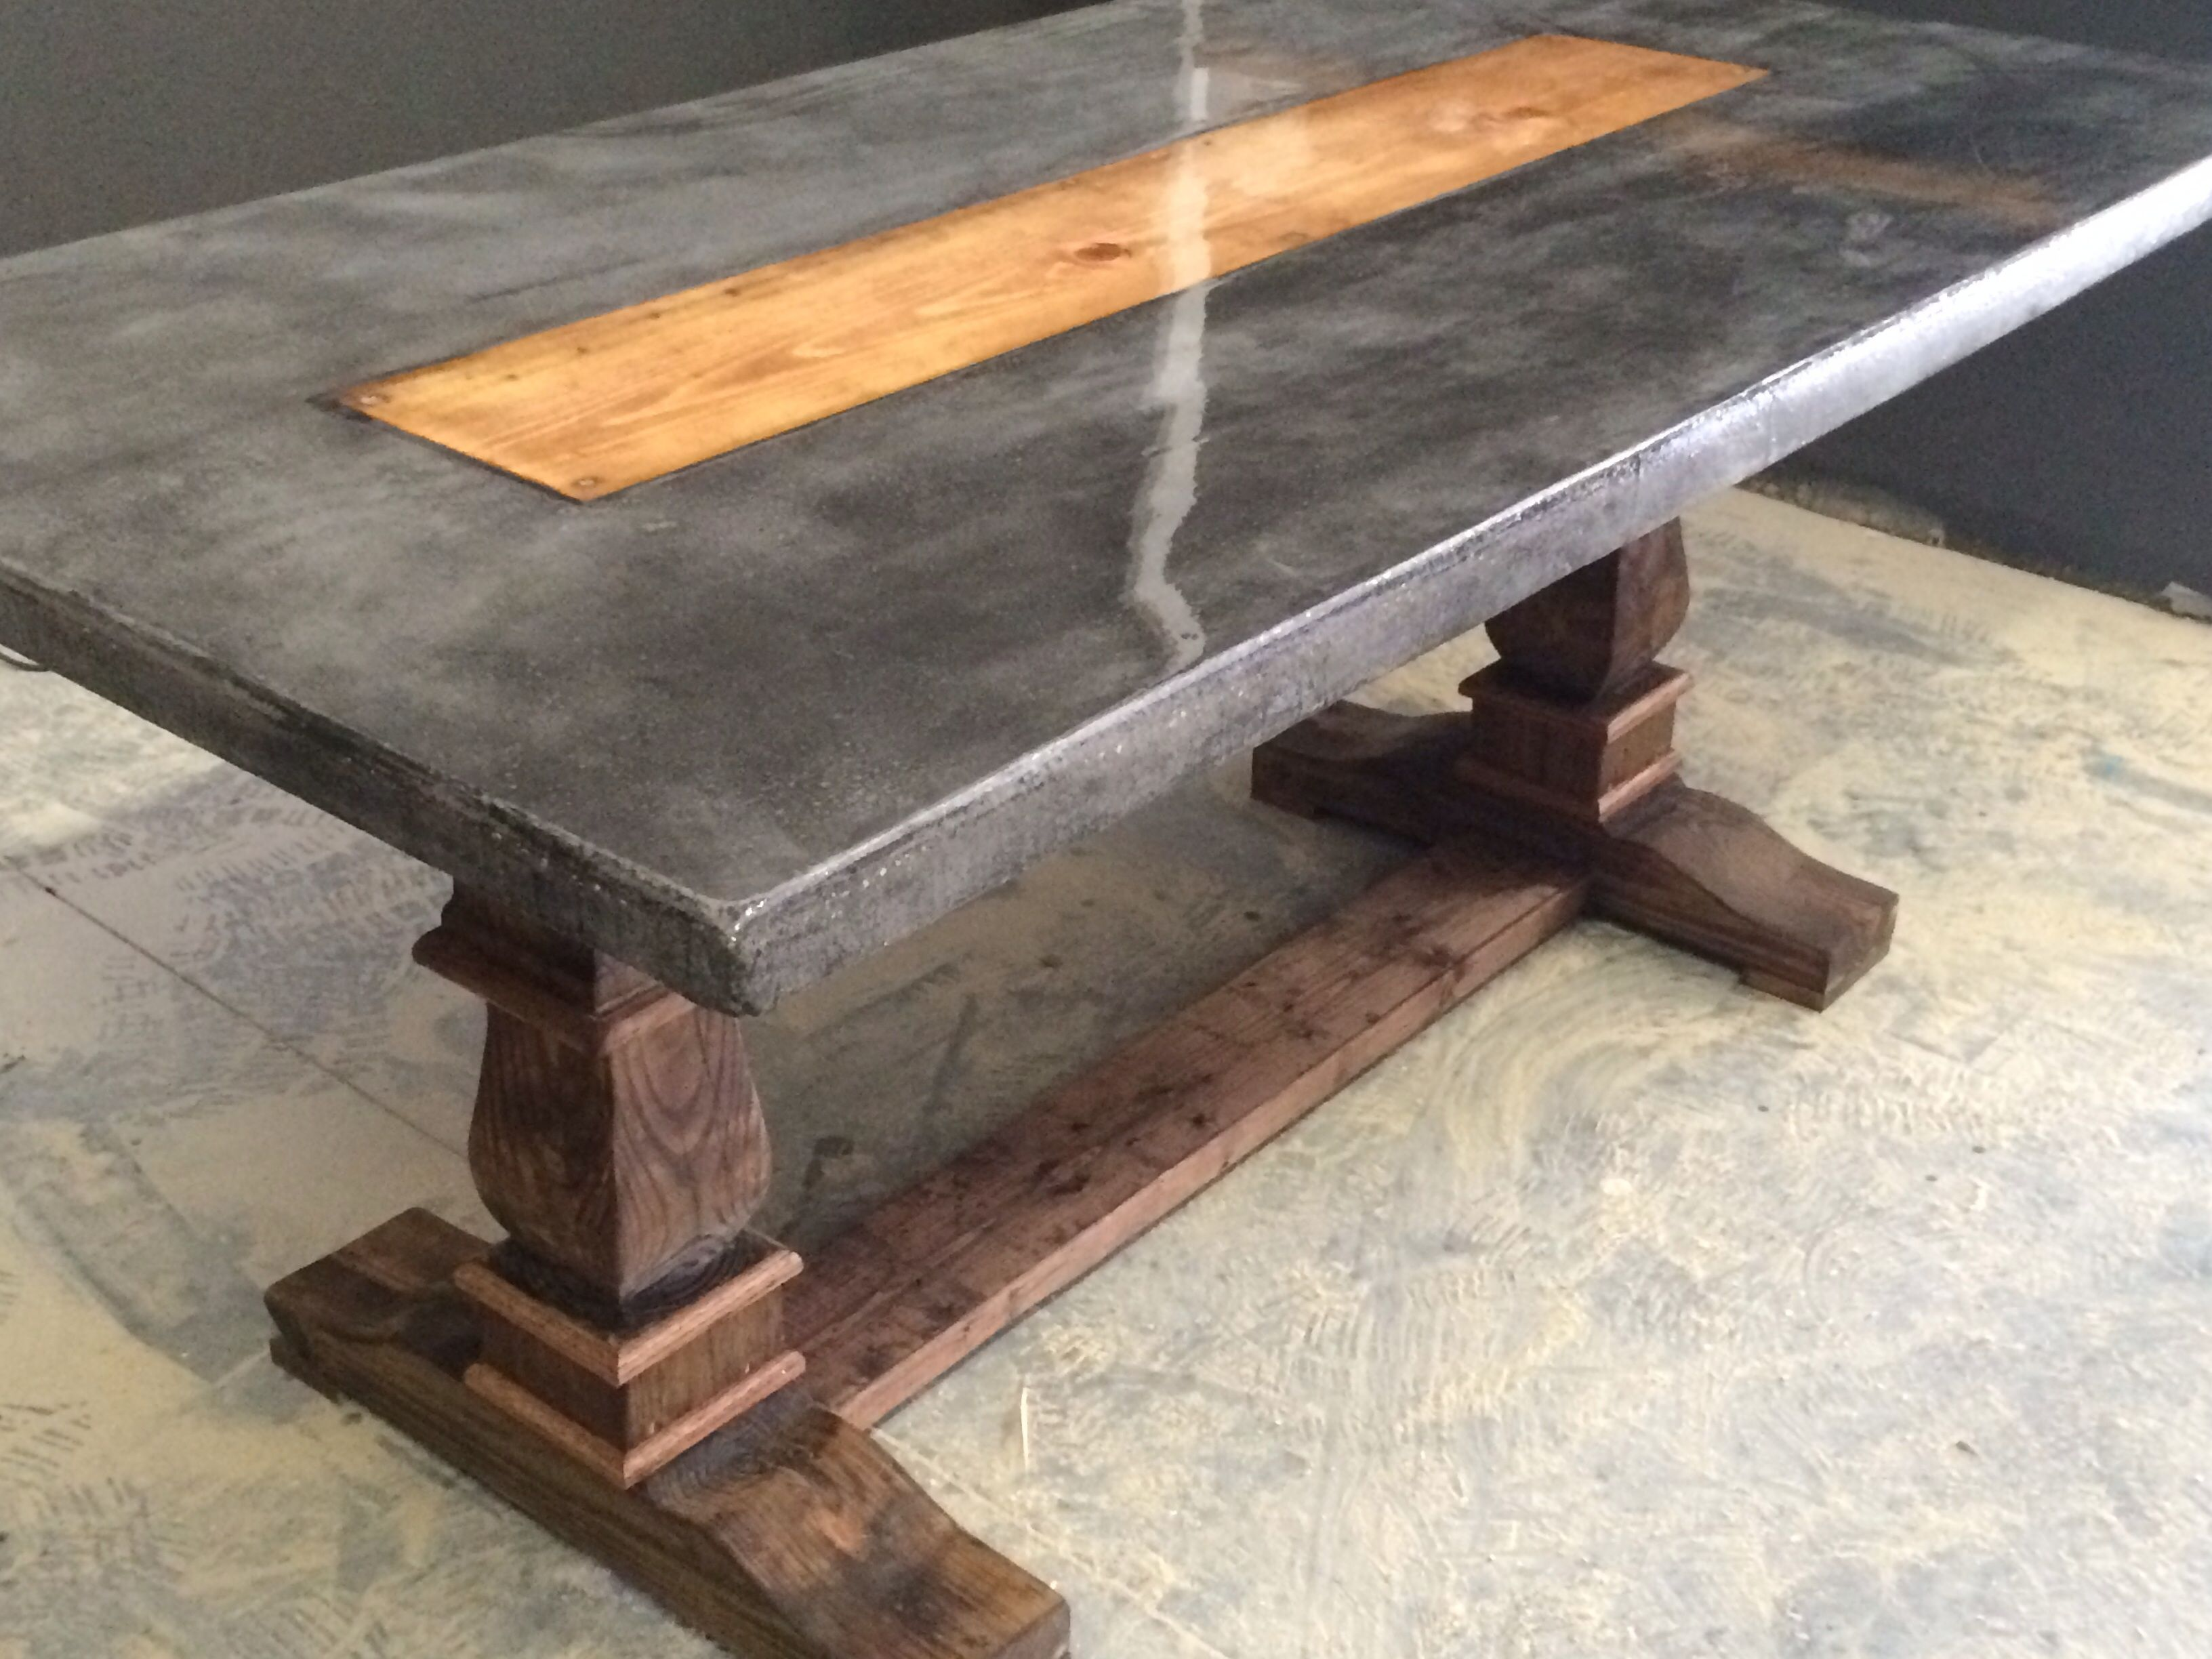 Regular concrete with dark dye added and a wooden inlay with resin top and hand carved pedestal Concrete and wood furniture